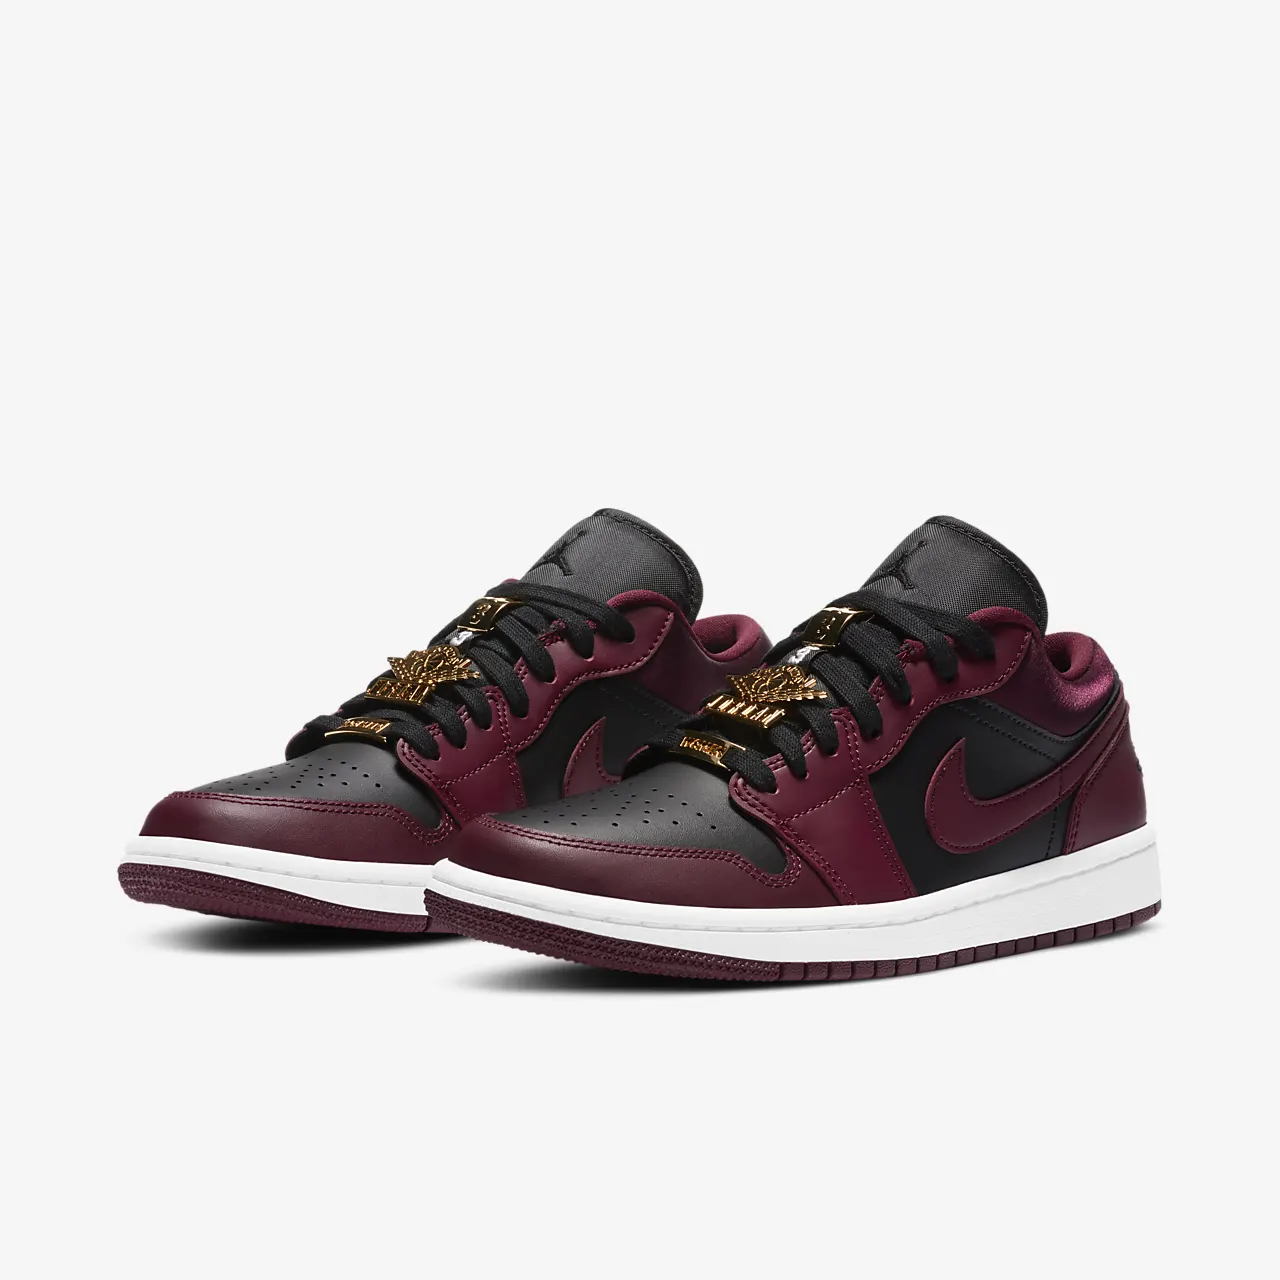 유럽직배송 나이키 NIKE Air Jordan 1 Low SE Women's Shoe DB6491-600